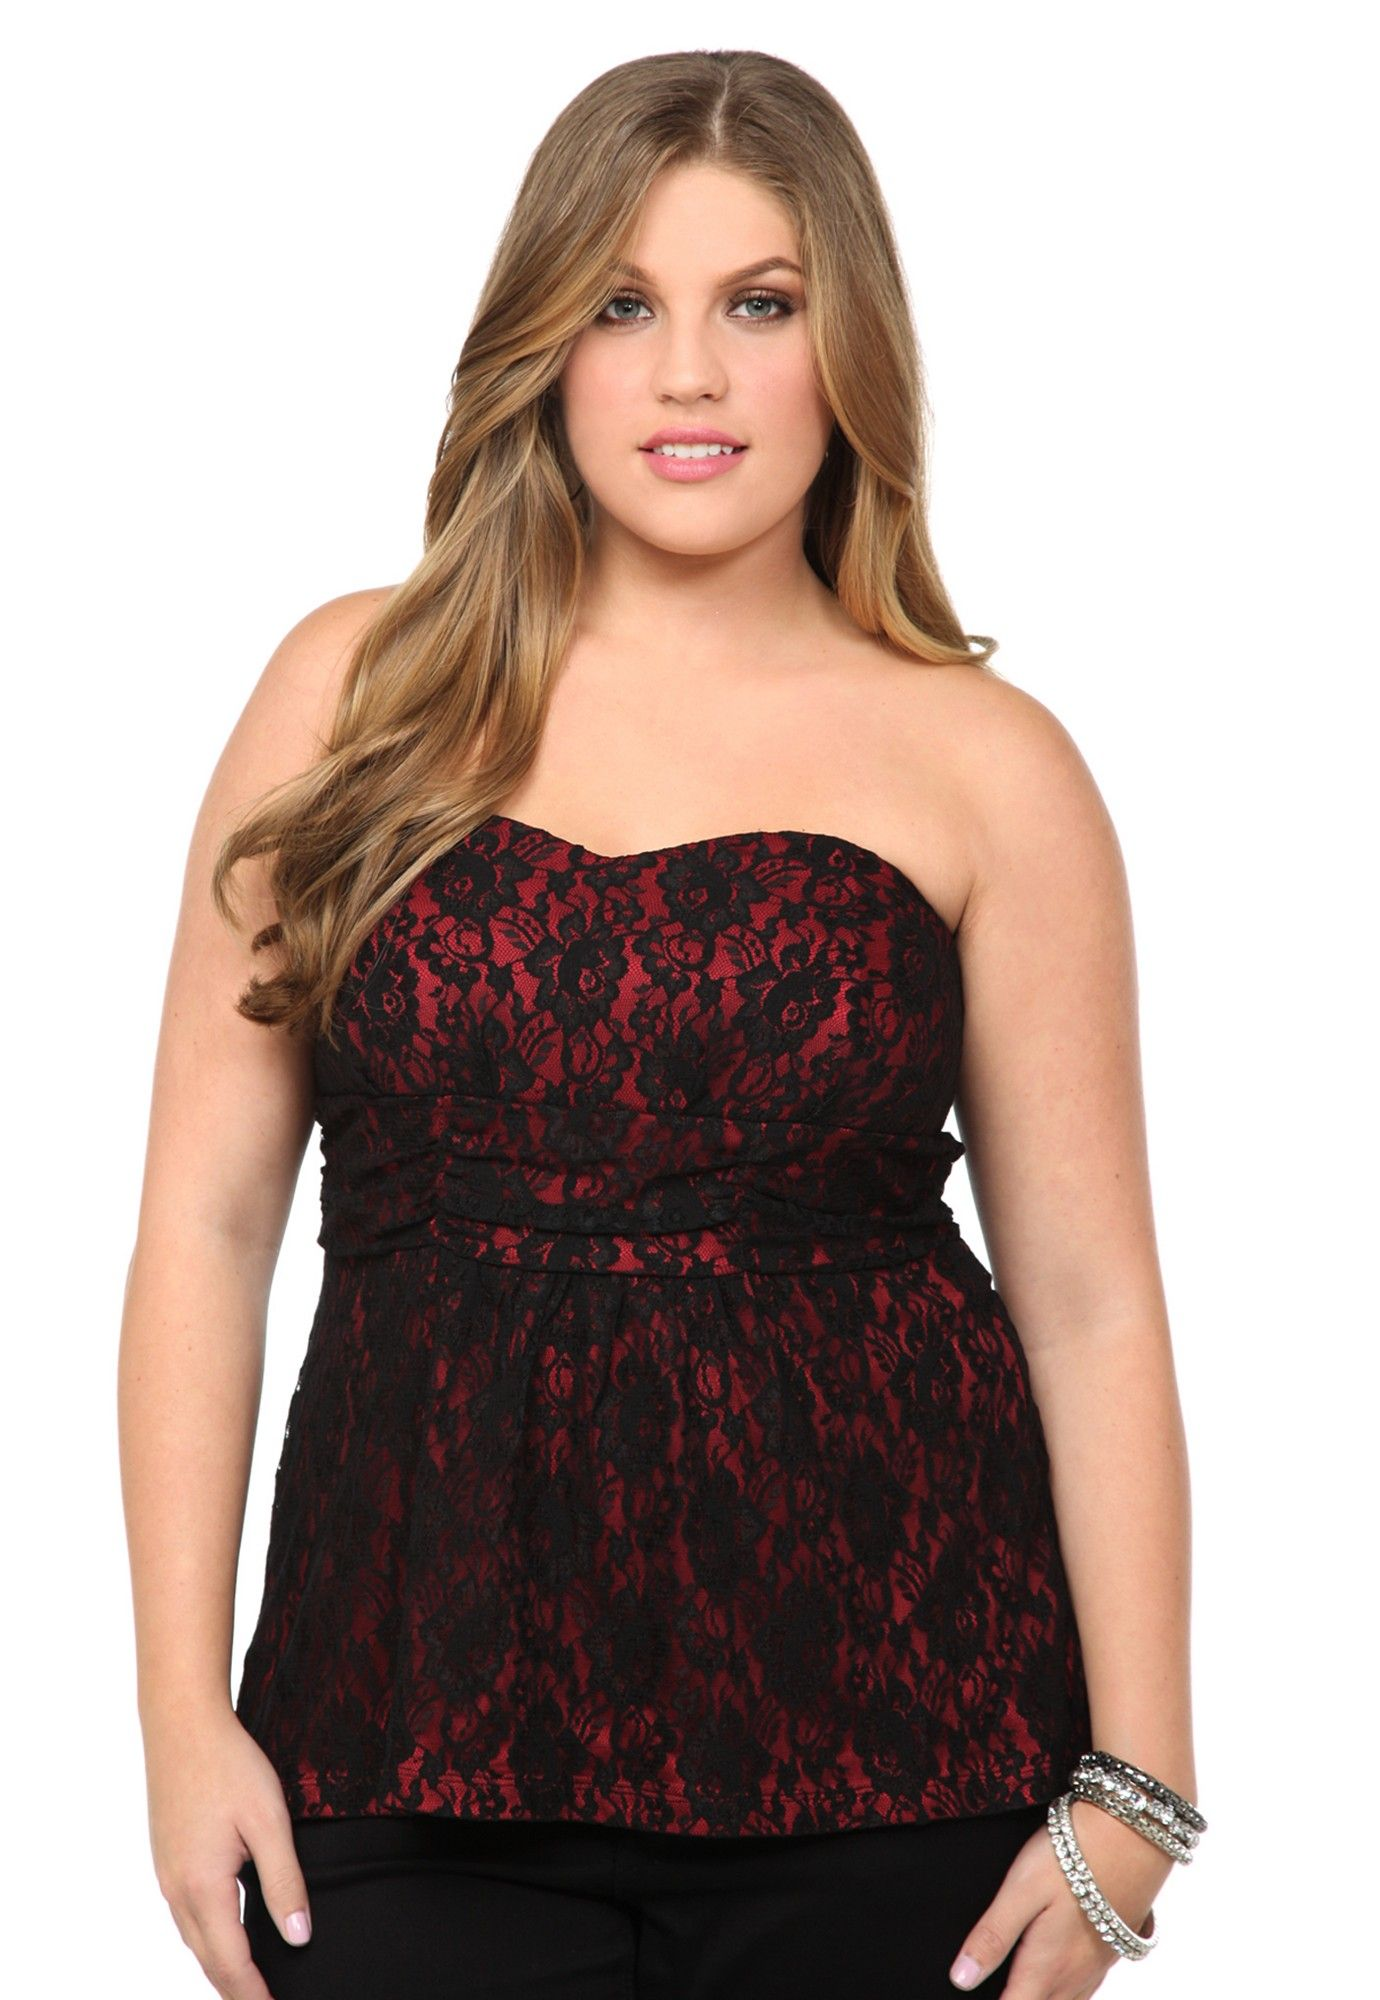 f235e7508f For a formal occasion Plus Size Red And Black Lace Tube Top image ...